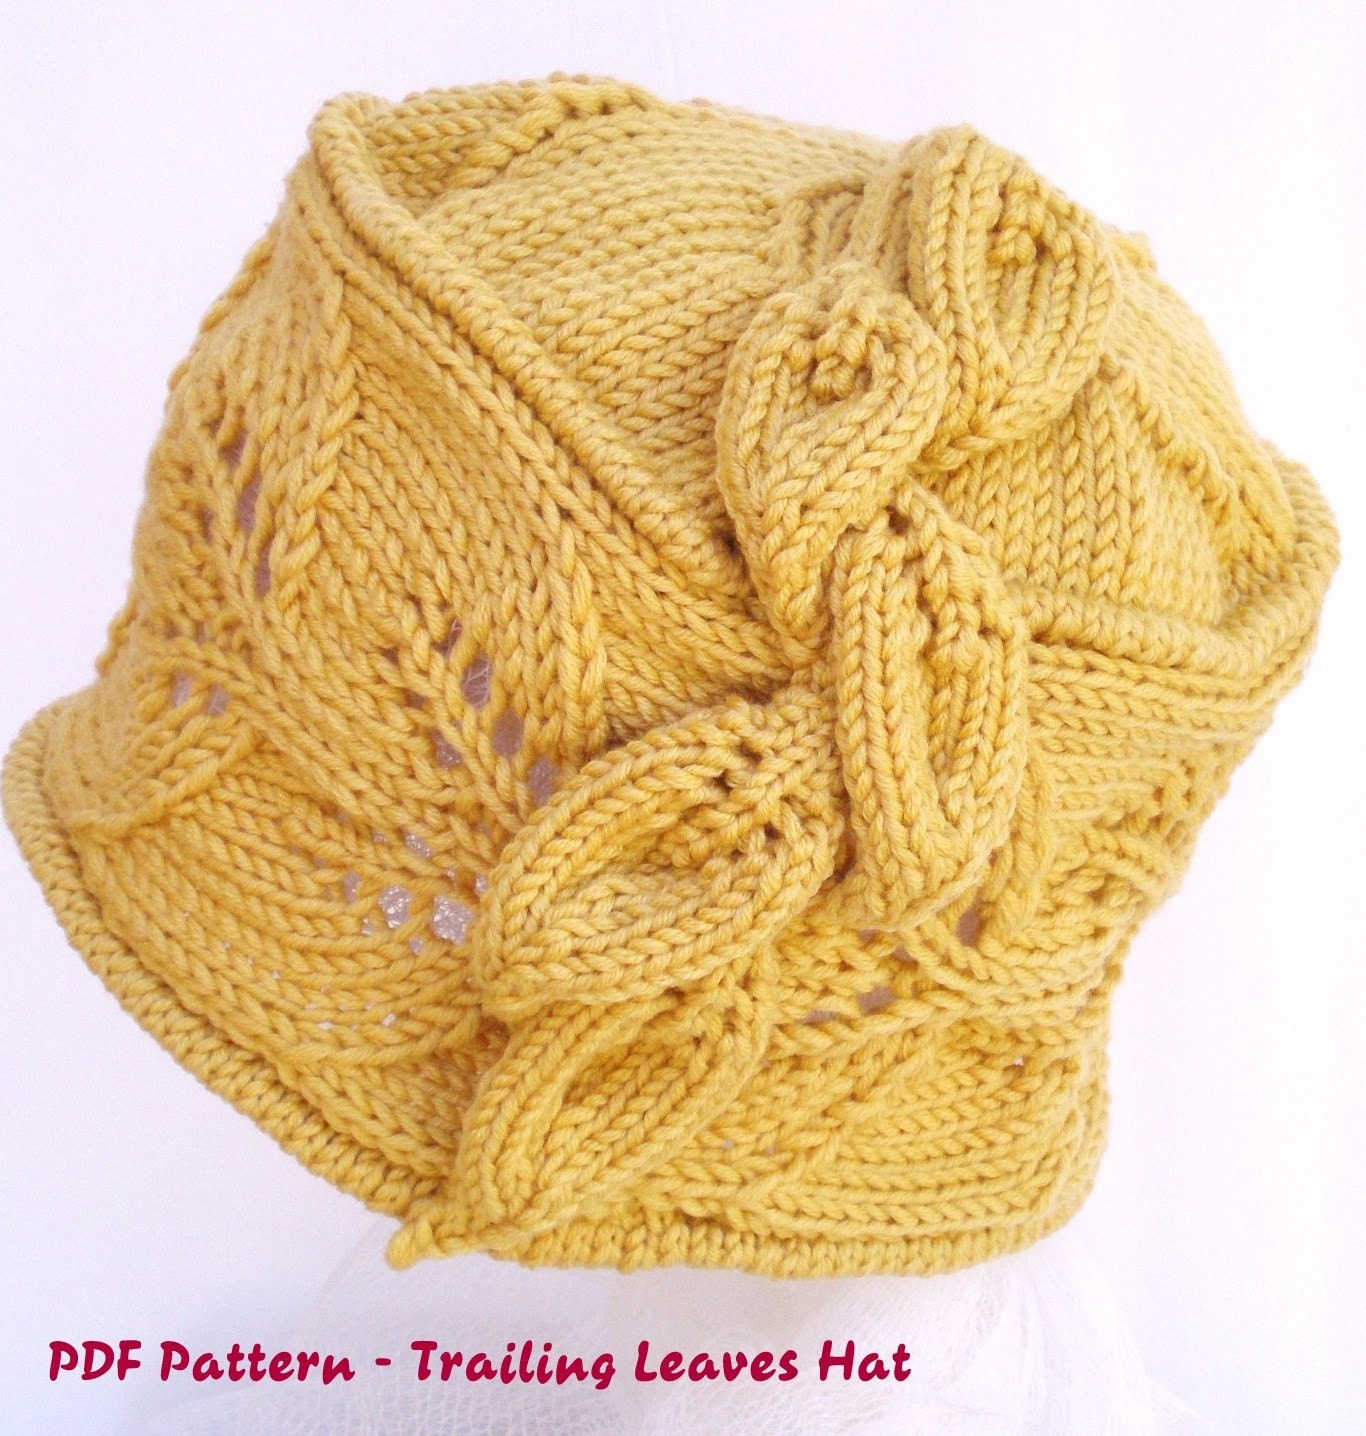 Double Leaf Knitting Pattern : PDF Knitting Pattern Wool Lace Cloche Hat Trailing Leaves